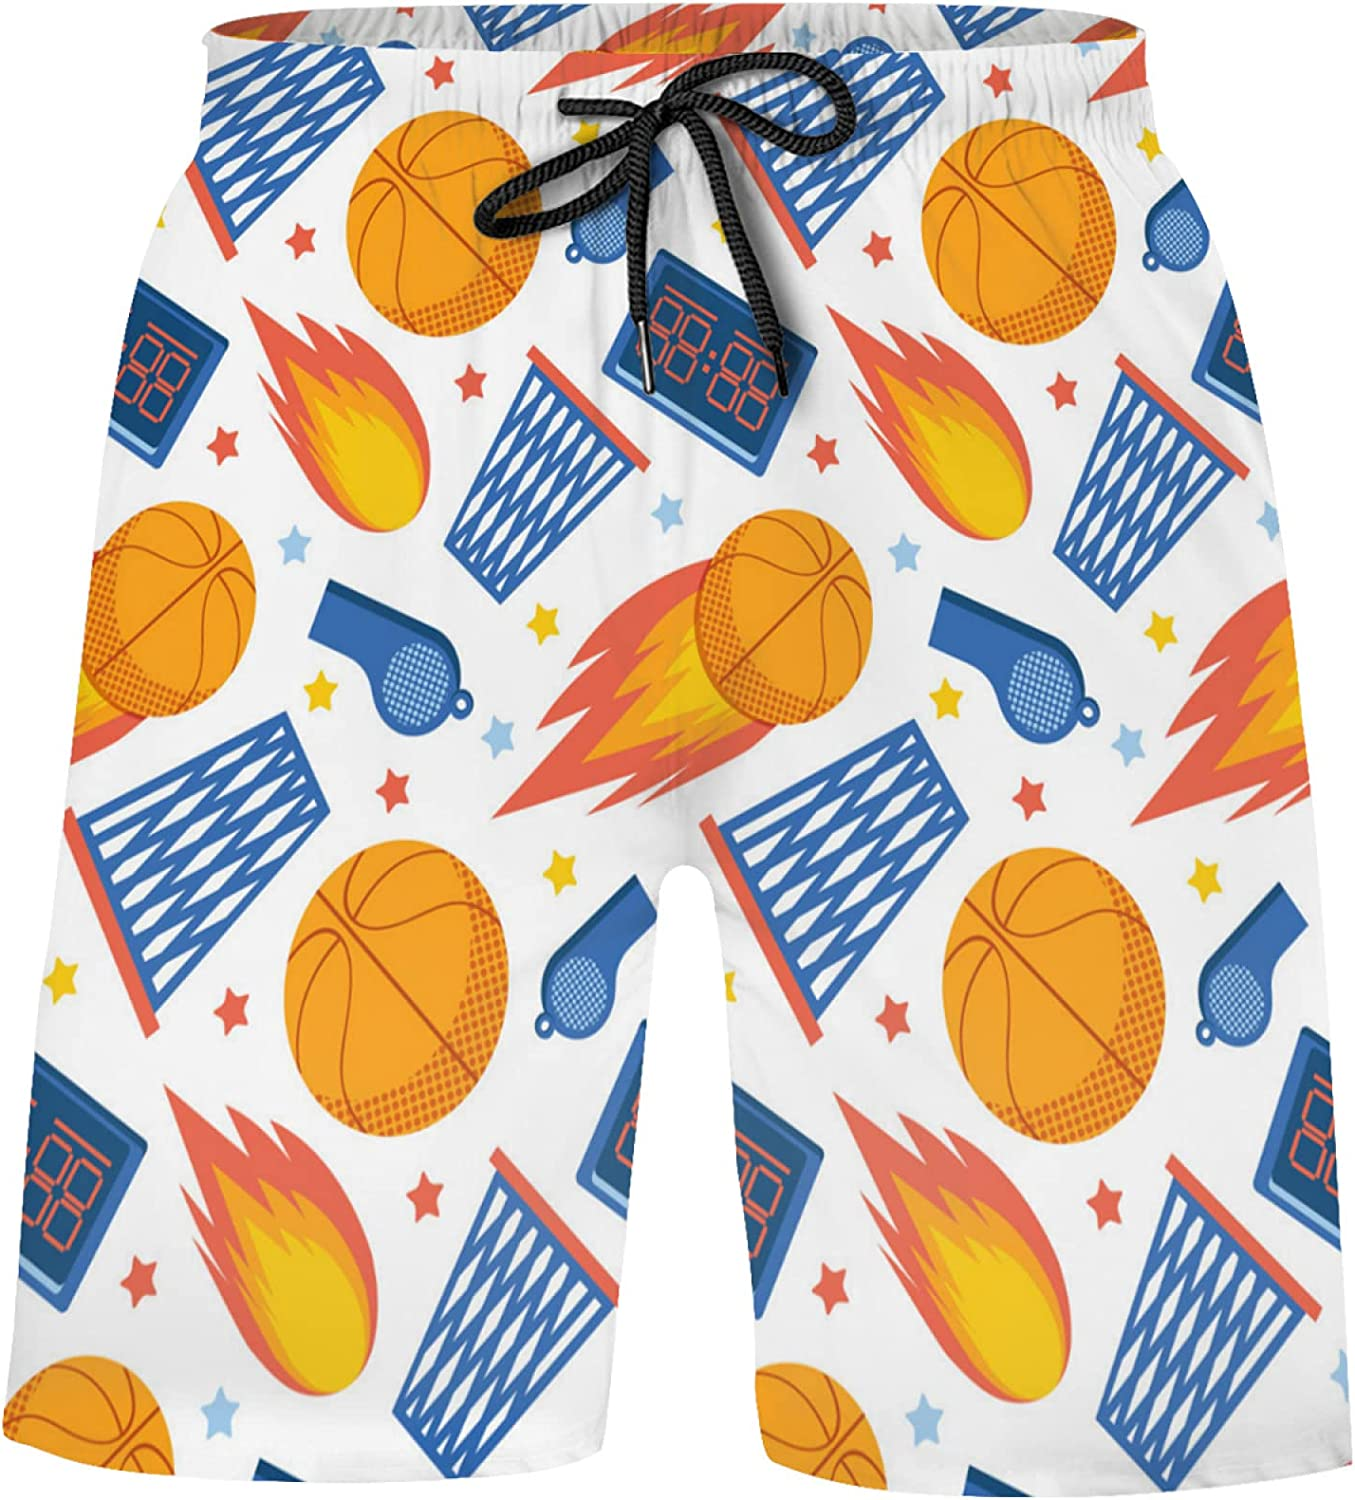 Basketball Basket New products world's highest quality popular Sports Ball On White Beauty products Trunks 50+ UPF Swim Boys